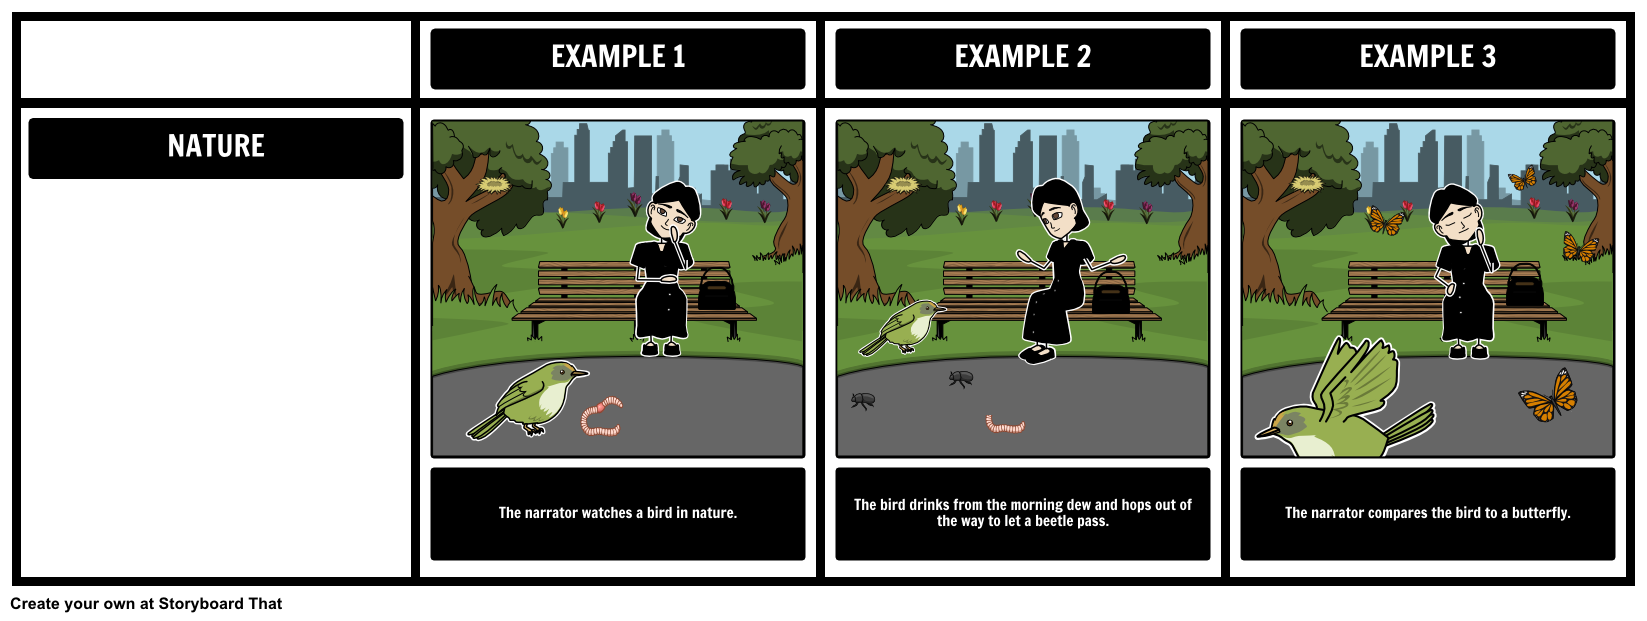 A bird came down the walk by emily dickinson themes symbols a bird came down the walk by emily dickinson themes symbols and motifs using a storyboard or graphic organizer students can visualize key themes in buycottarizona